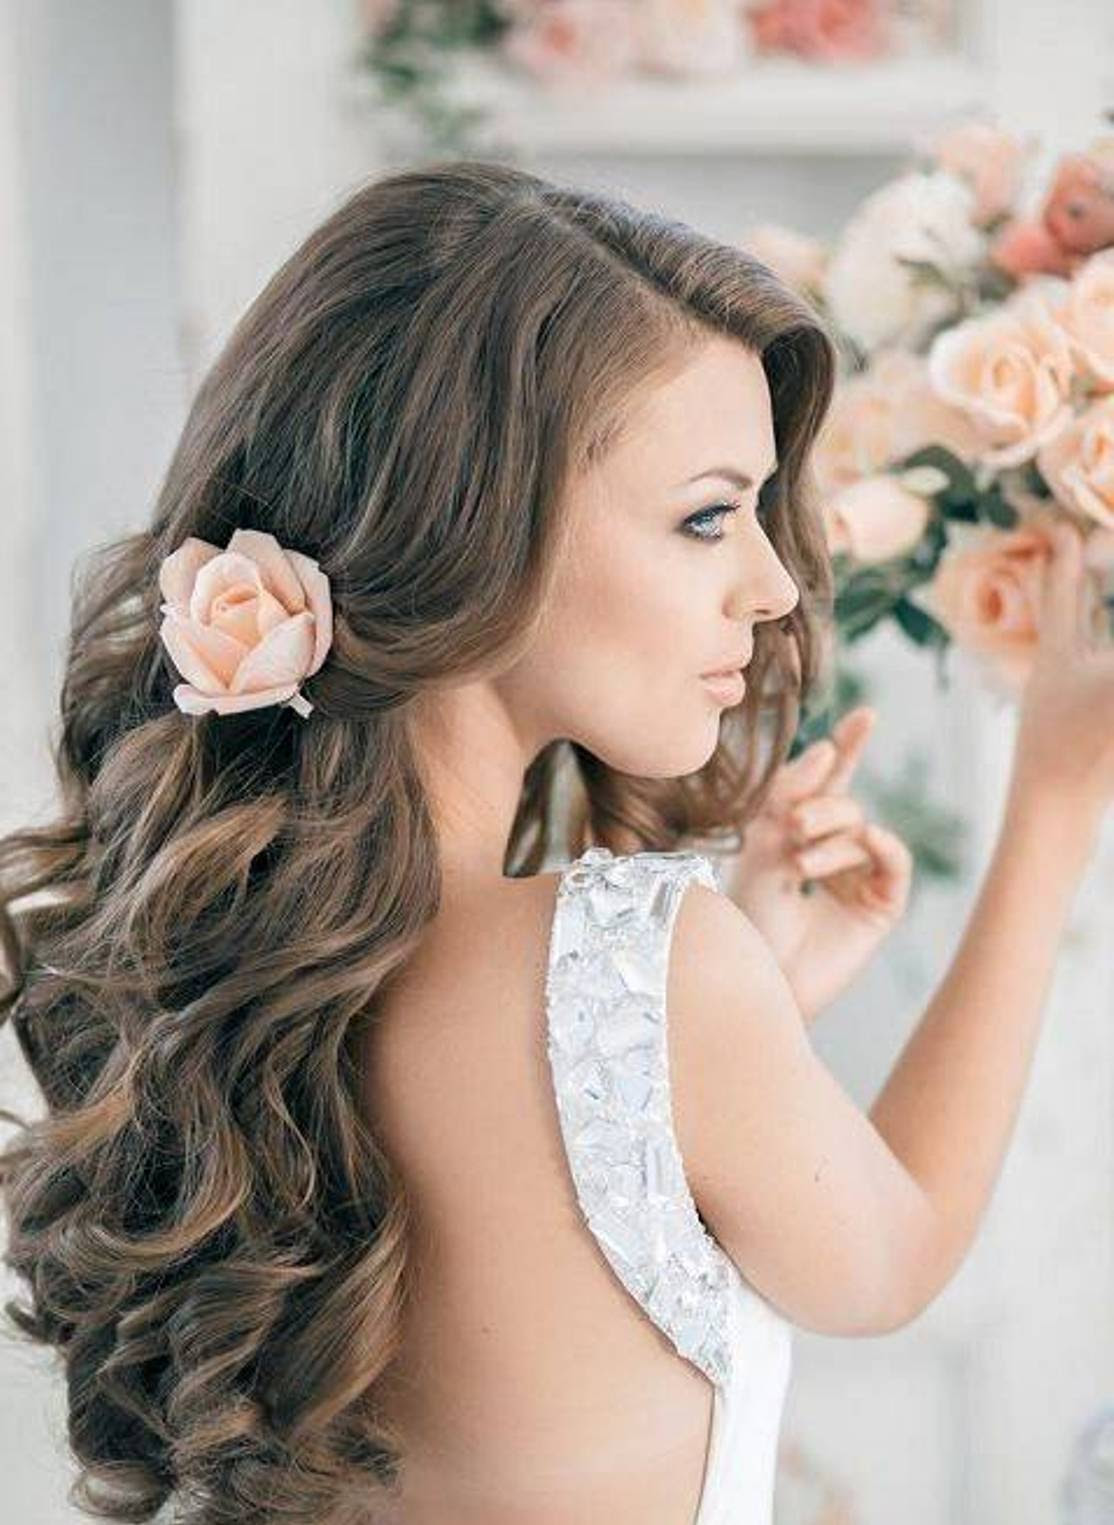 Hairstyles For Long Hair PictureFuneral Program Designs